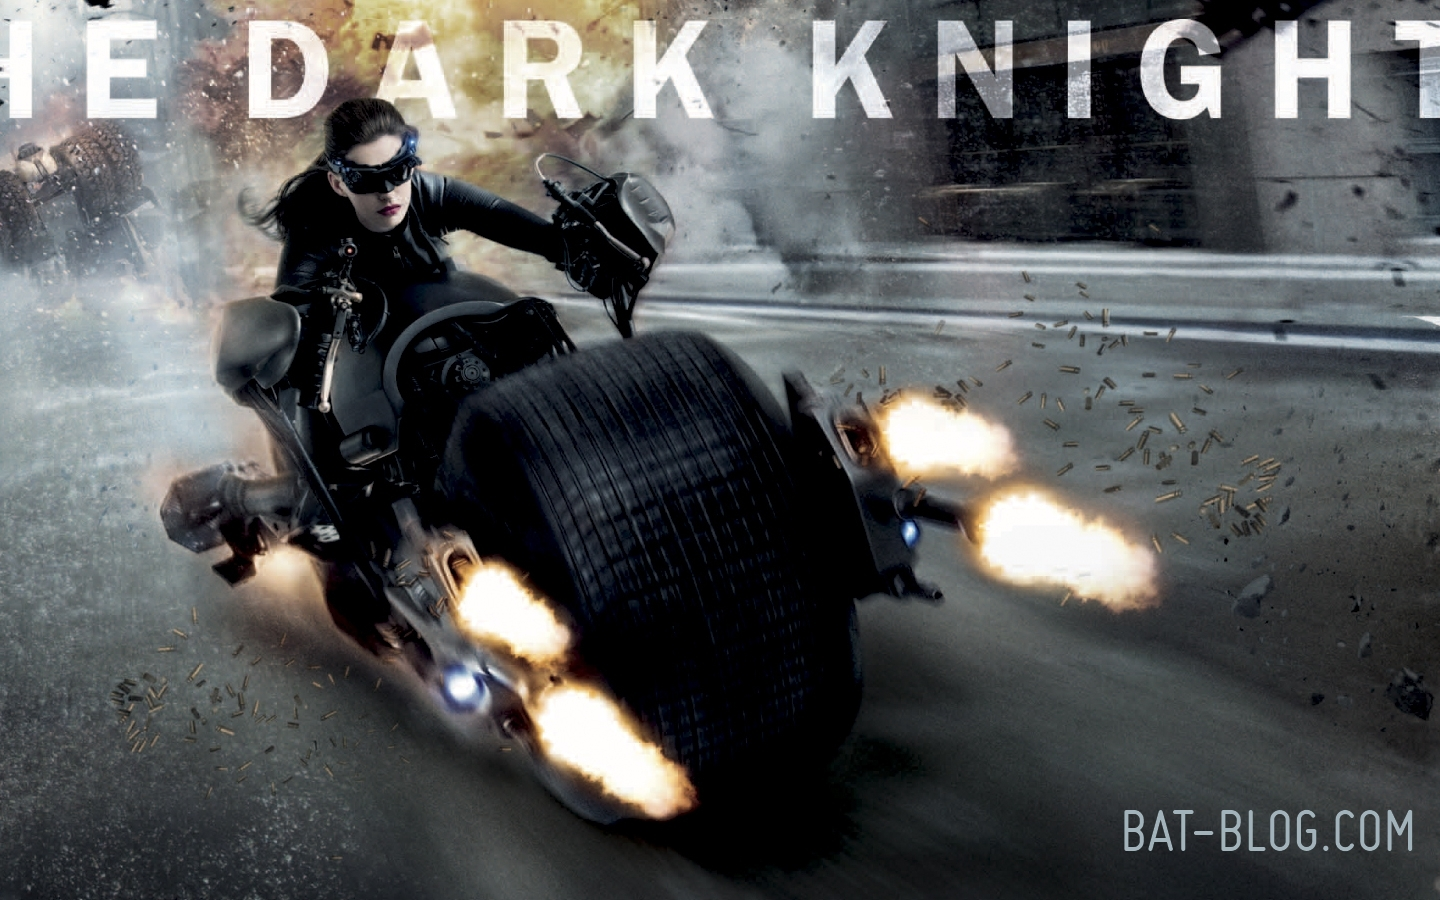 http://1.bp.blogspot.com/-gAYs6rA2oSo/T8CIwotqRoI/AAAAAAAAT0M/M35uNWKMIxA/s1600/wallpaper-anne-hathaway-catwoman-the-dark-knight-rises-batman-movie-1.jpg